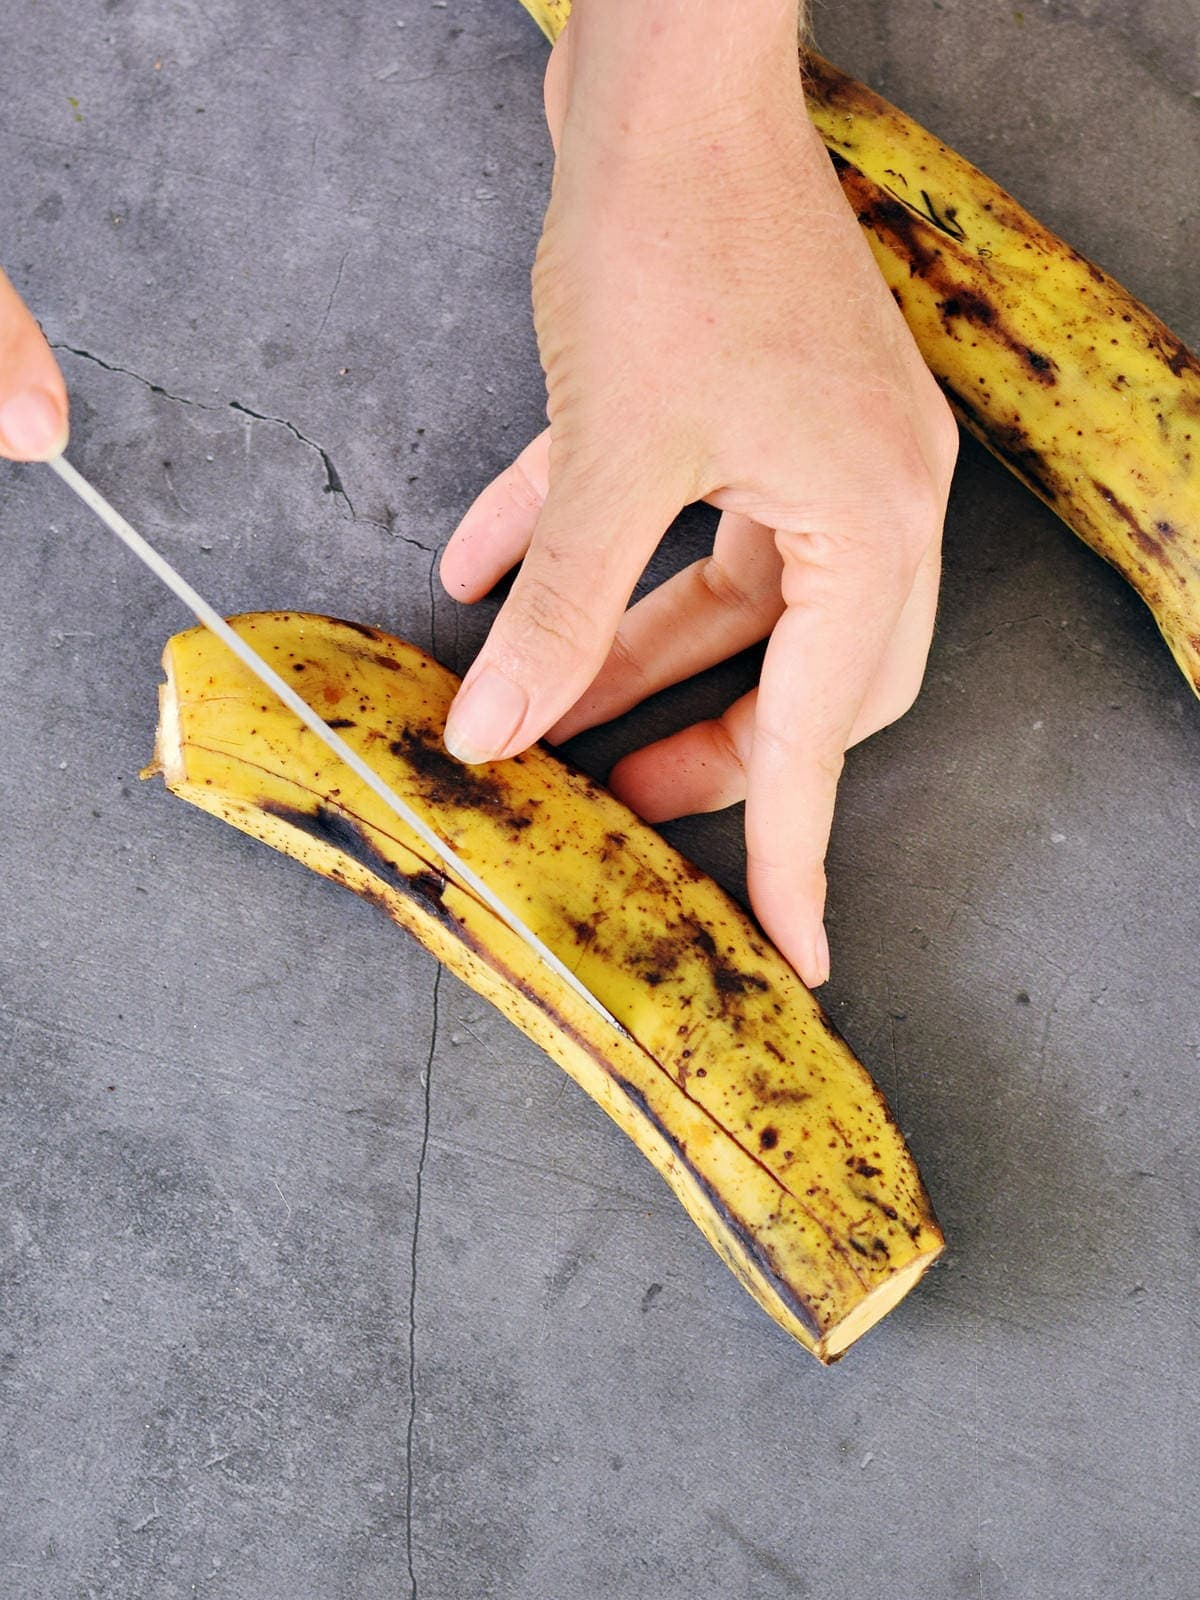 cutting into plantain skin with a knife